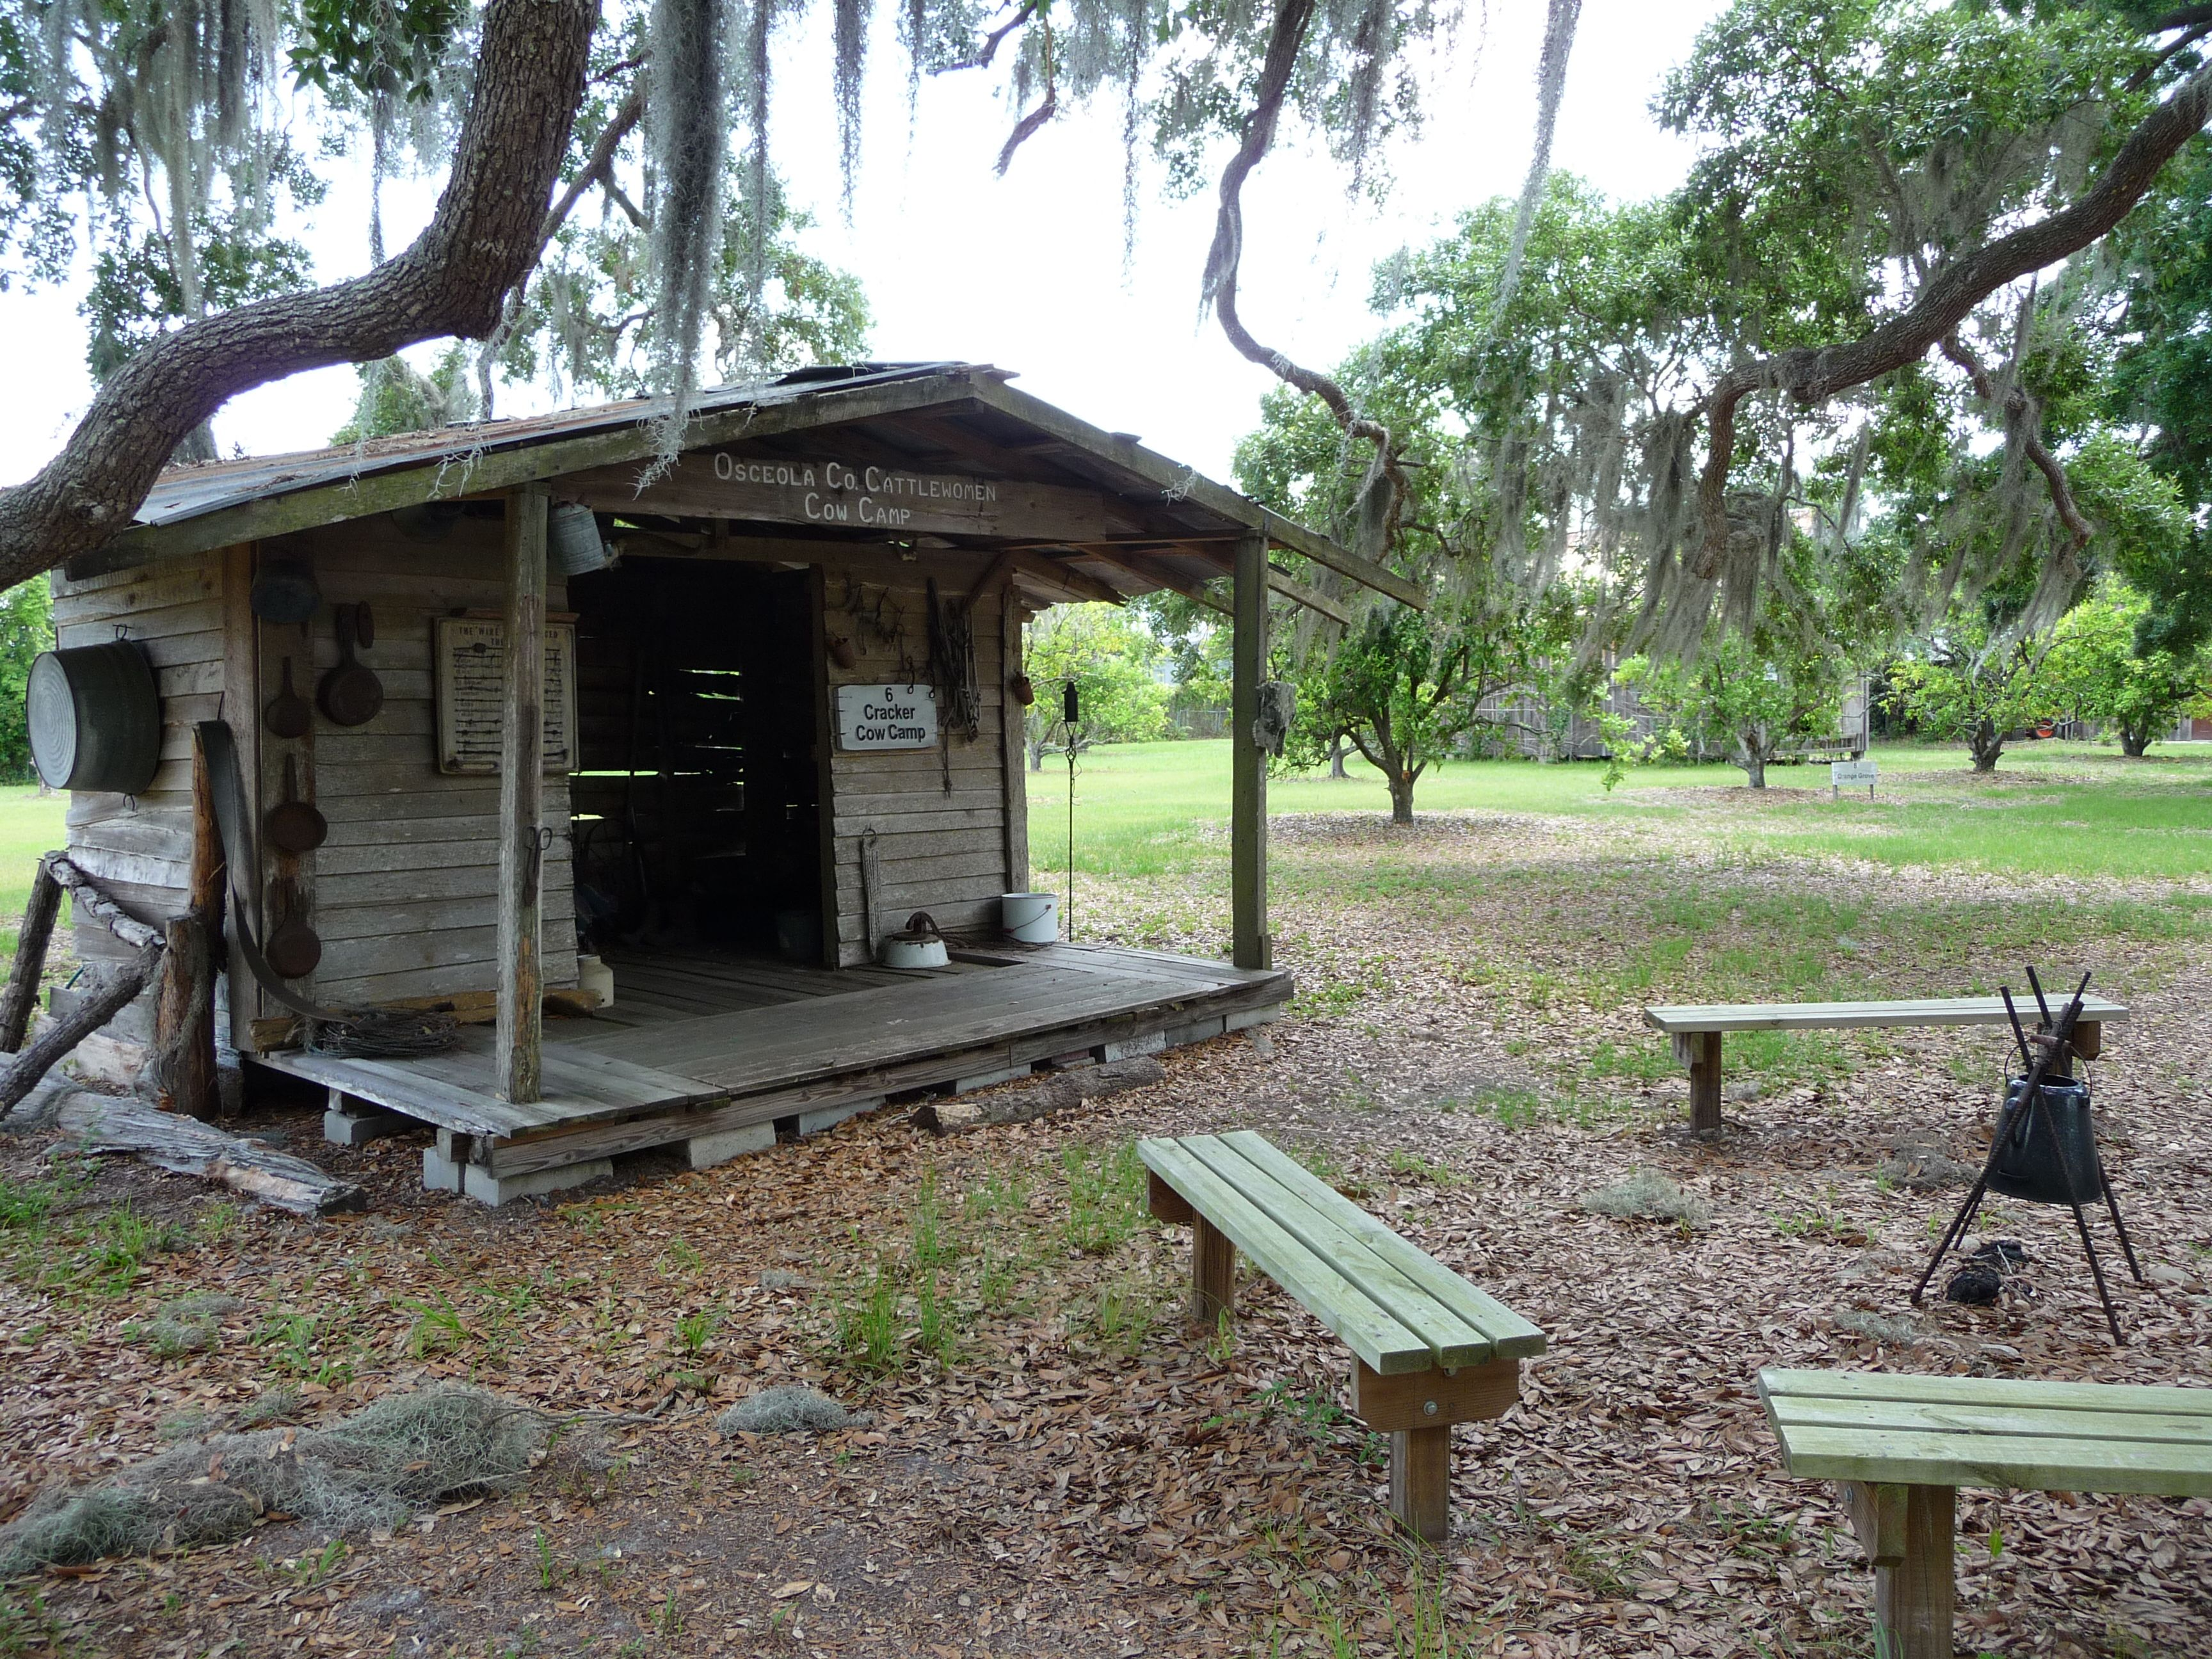 Cracker house Marion County FL this is my county how cool